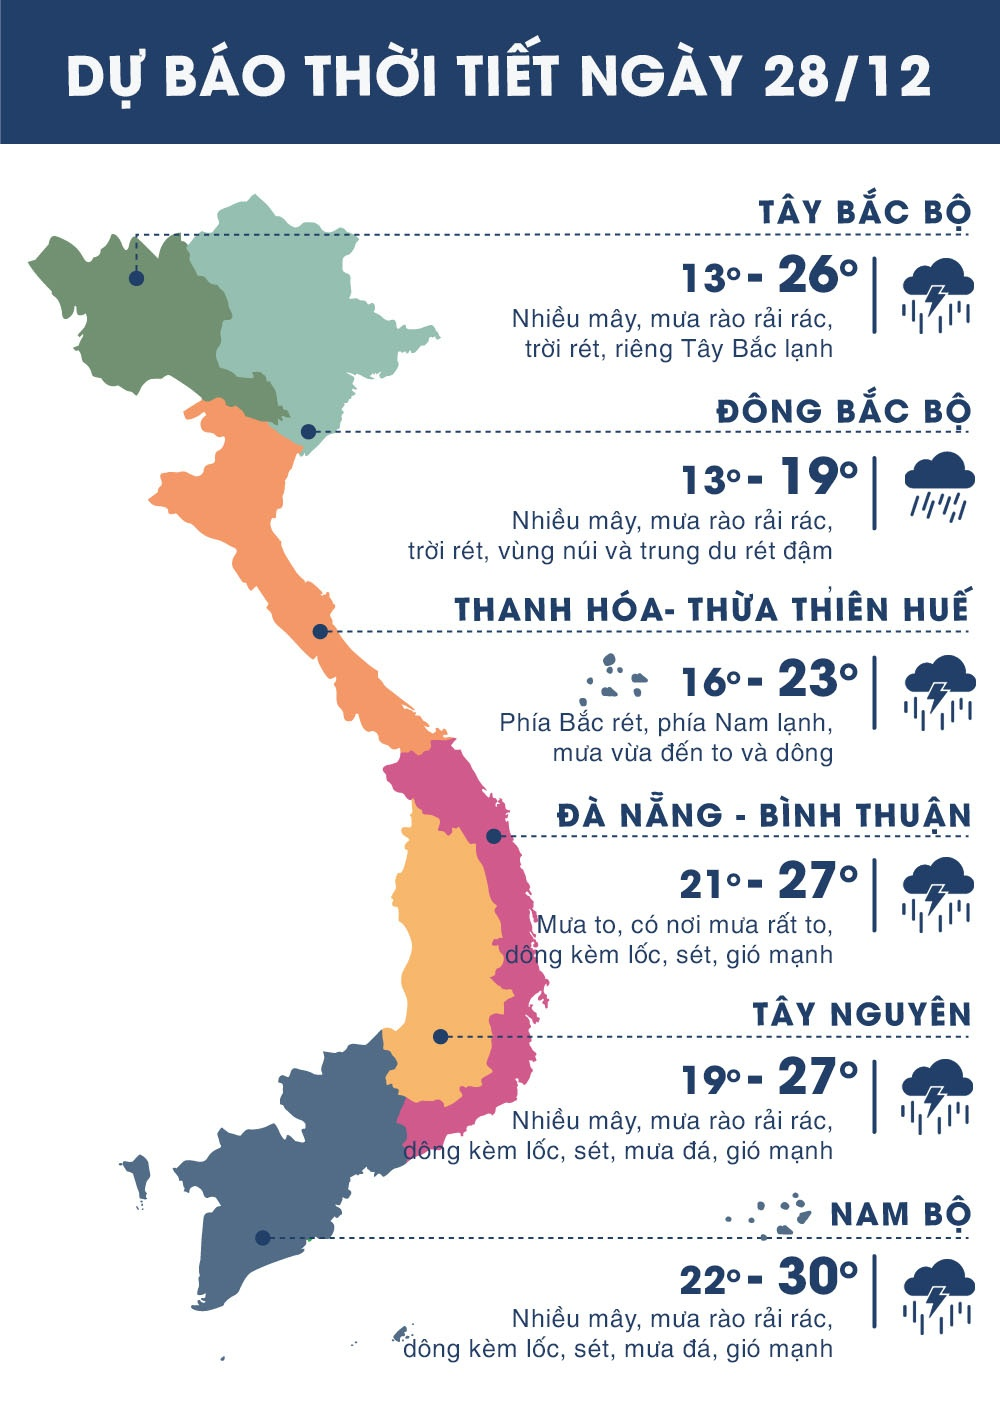 thoi tiet ngay 28/12 anh 1